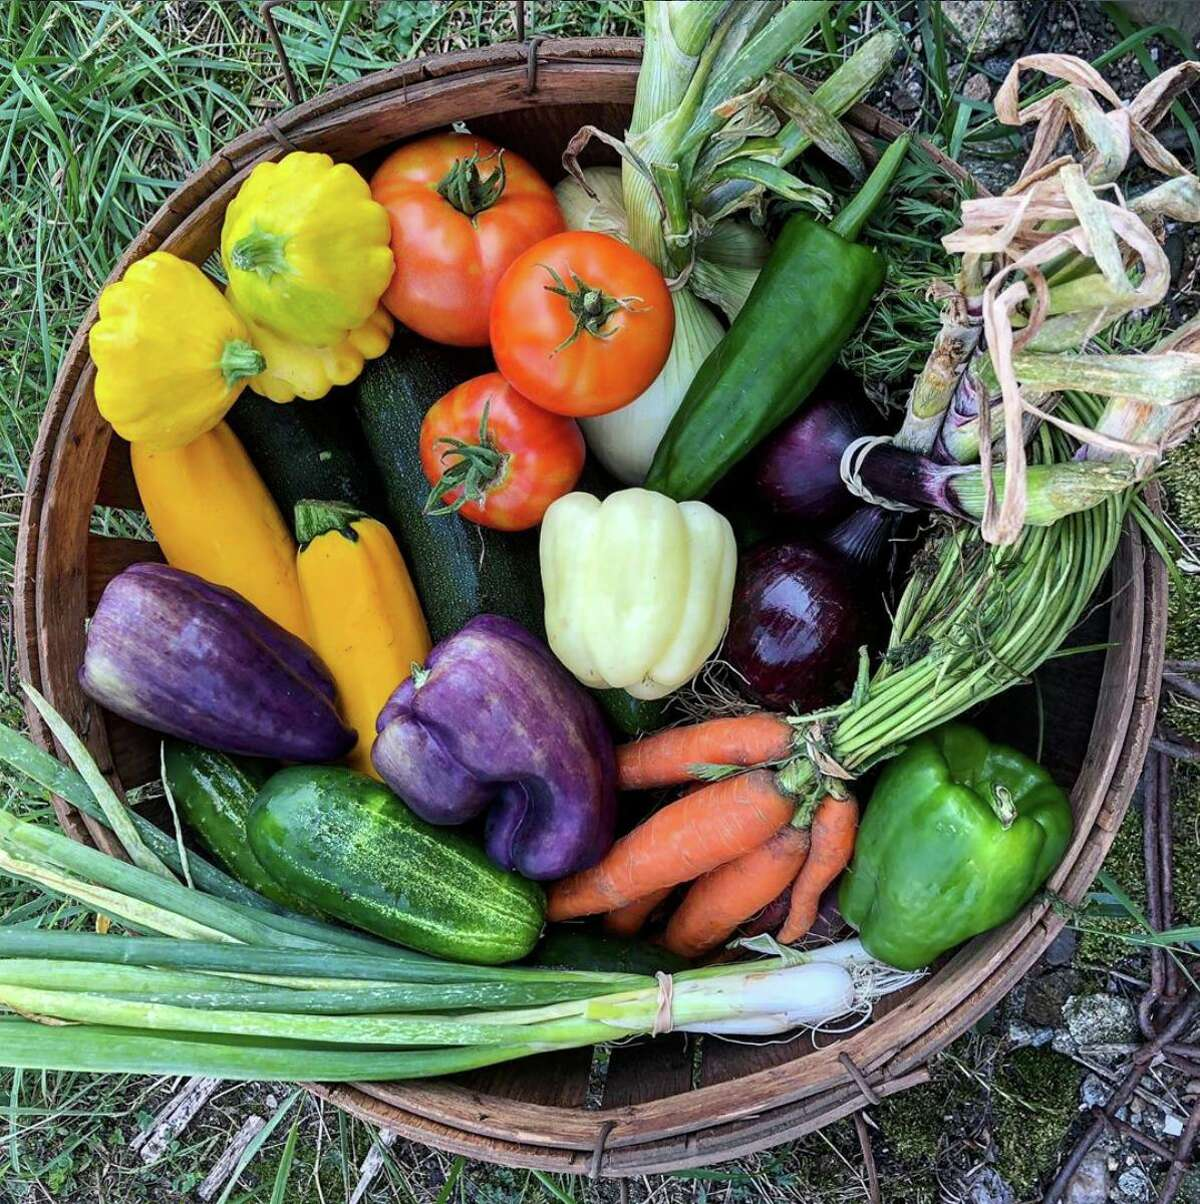 Buying into a CSA share entitles the owner to a portion of the farm's produce.